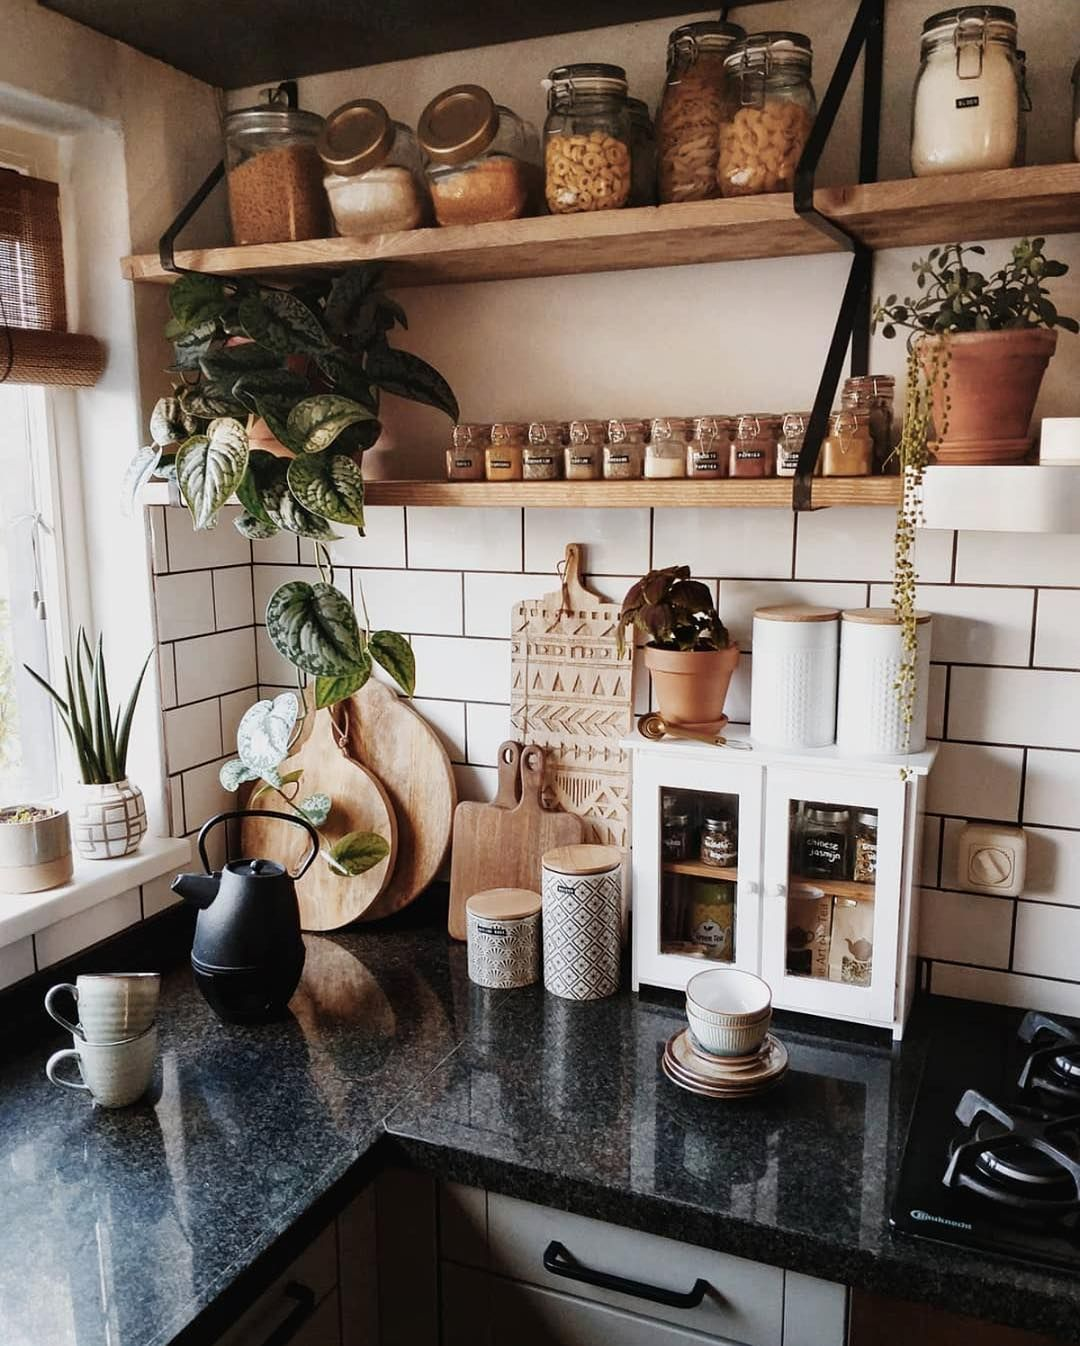 apartment therapy sur instagram peut on passer tout le week end dans cette cuisine s il vous on boho chic interior design kitchen id=22539